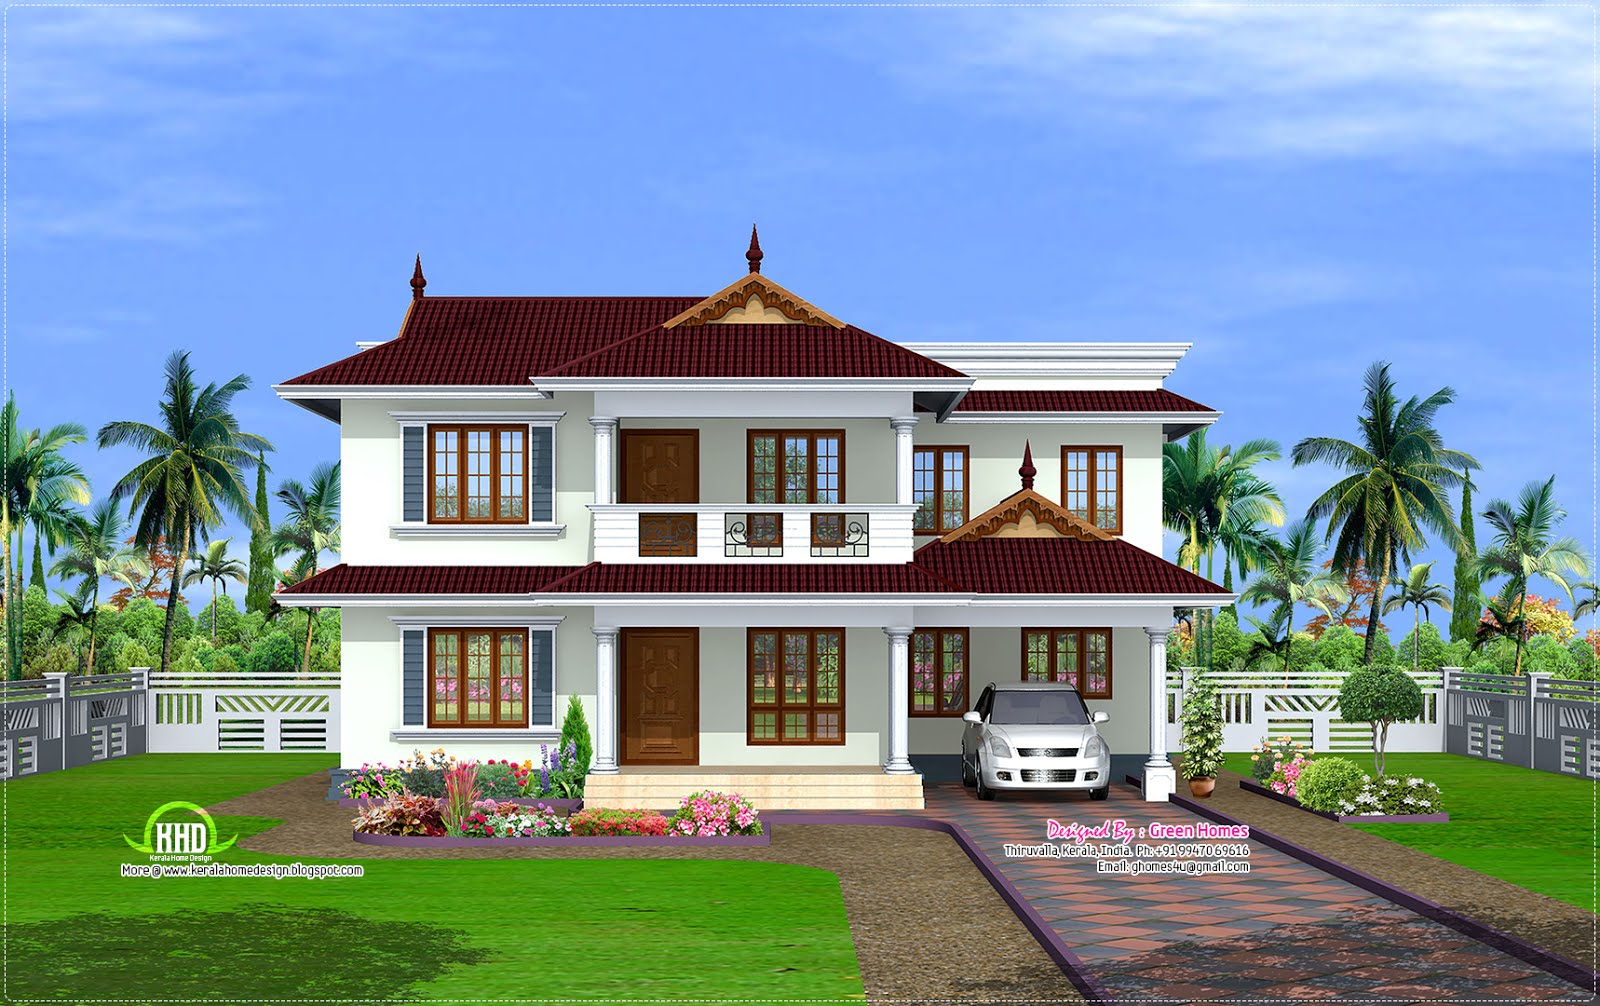 2600 kerala model house kerala home design and for Home designs in kerala